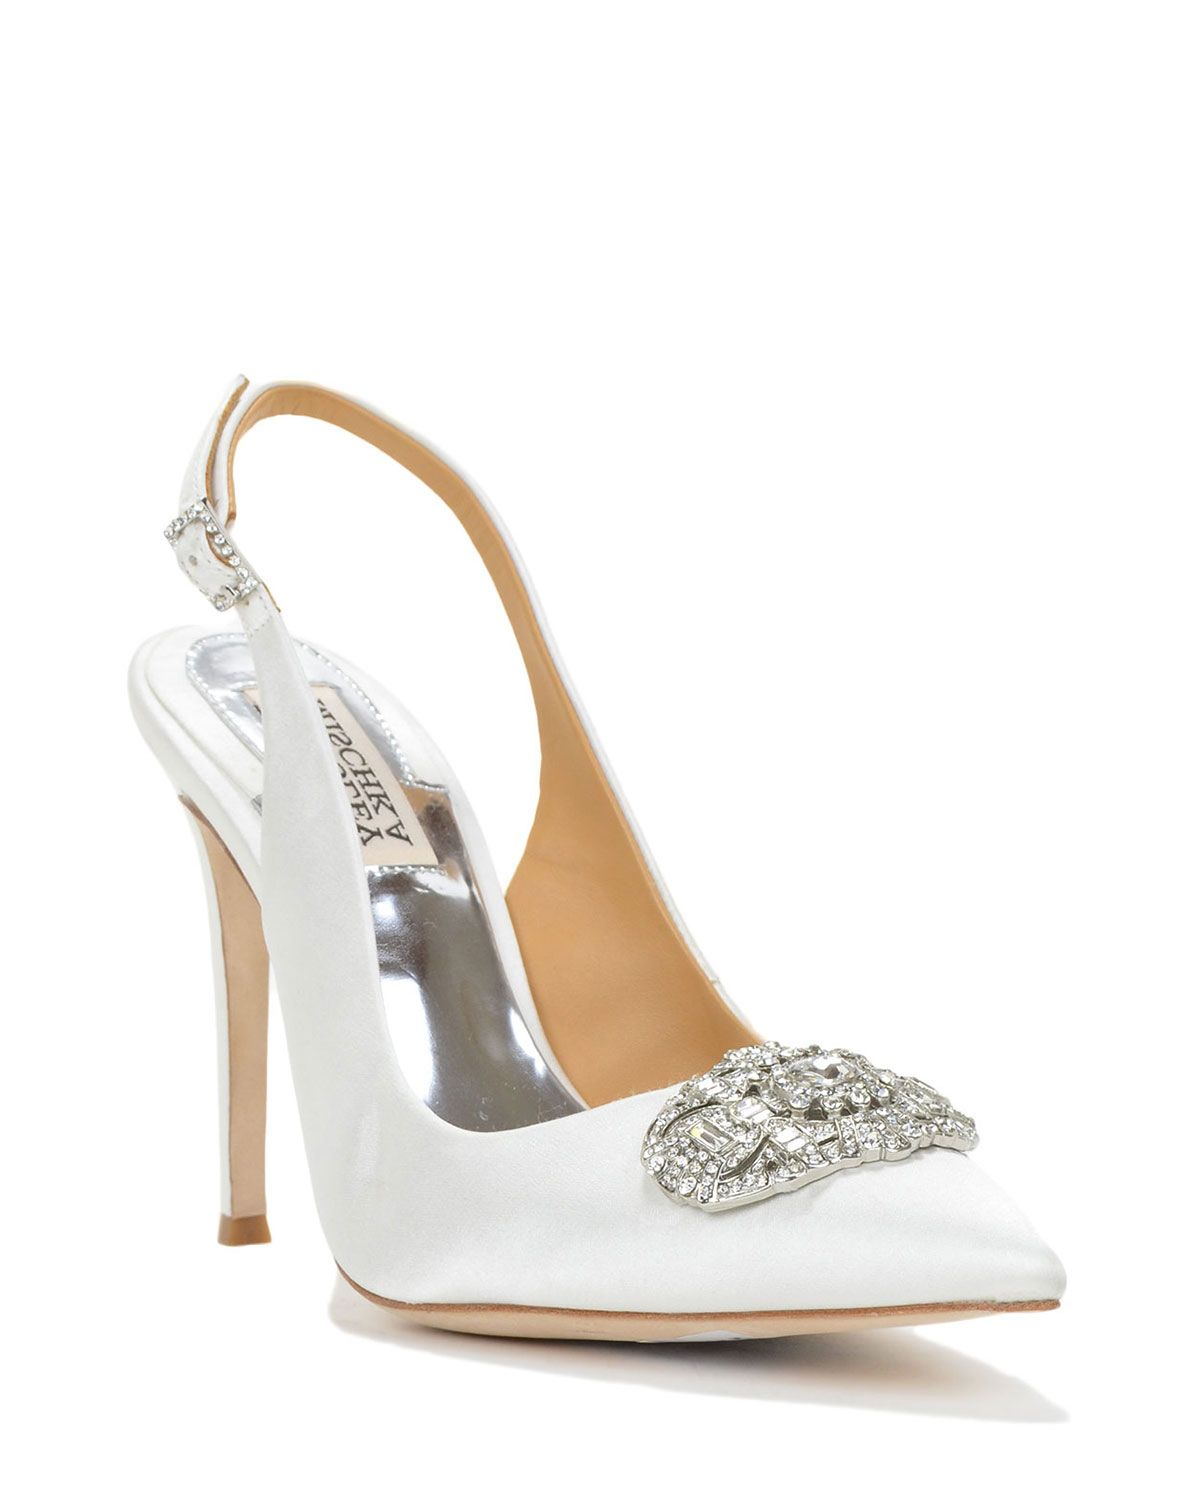 Sansa Satin Slingback Evening Shoe by Badgley Mischka